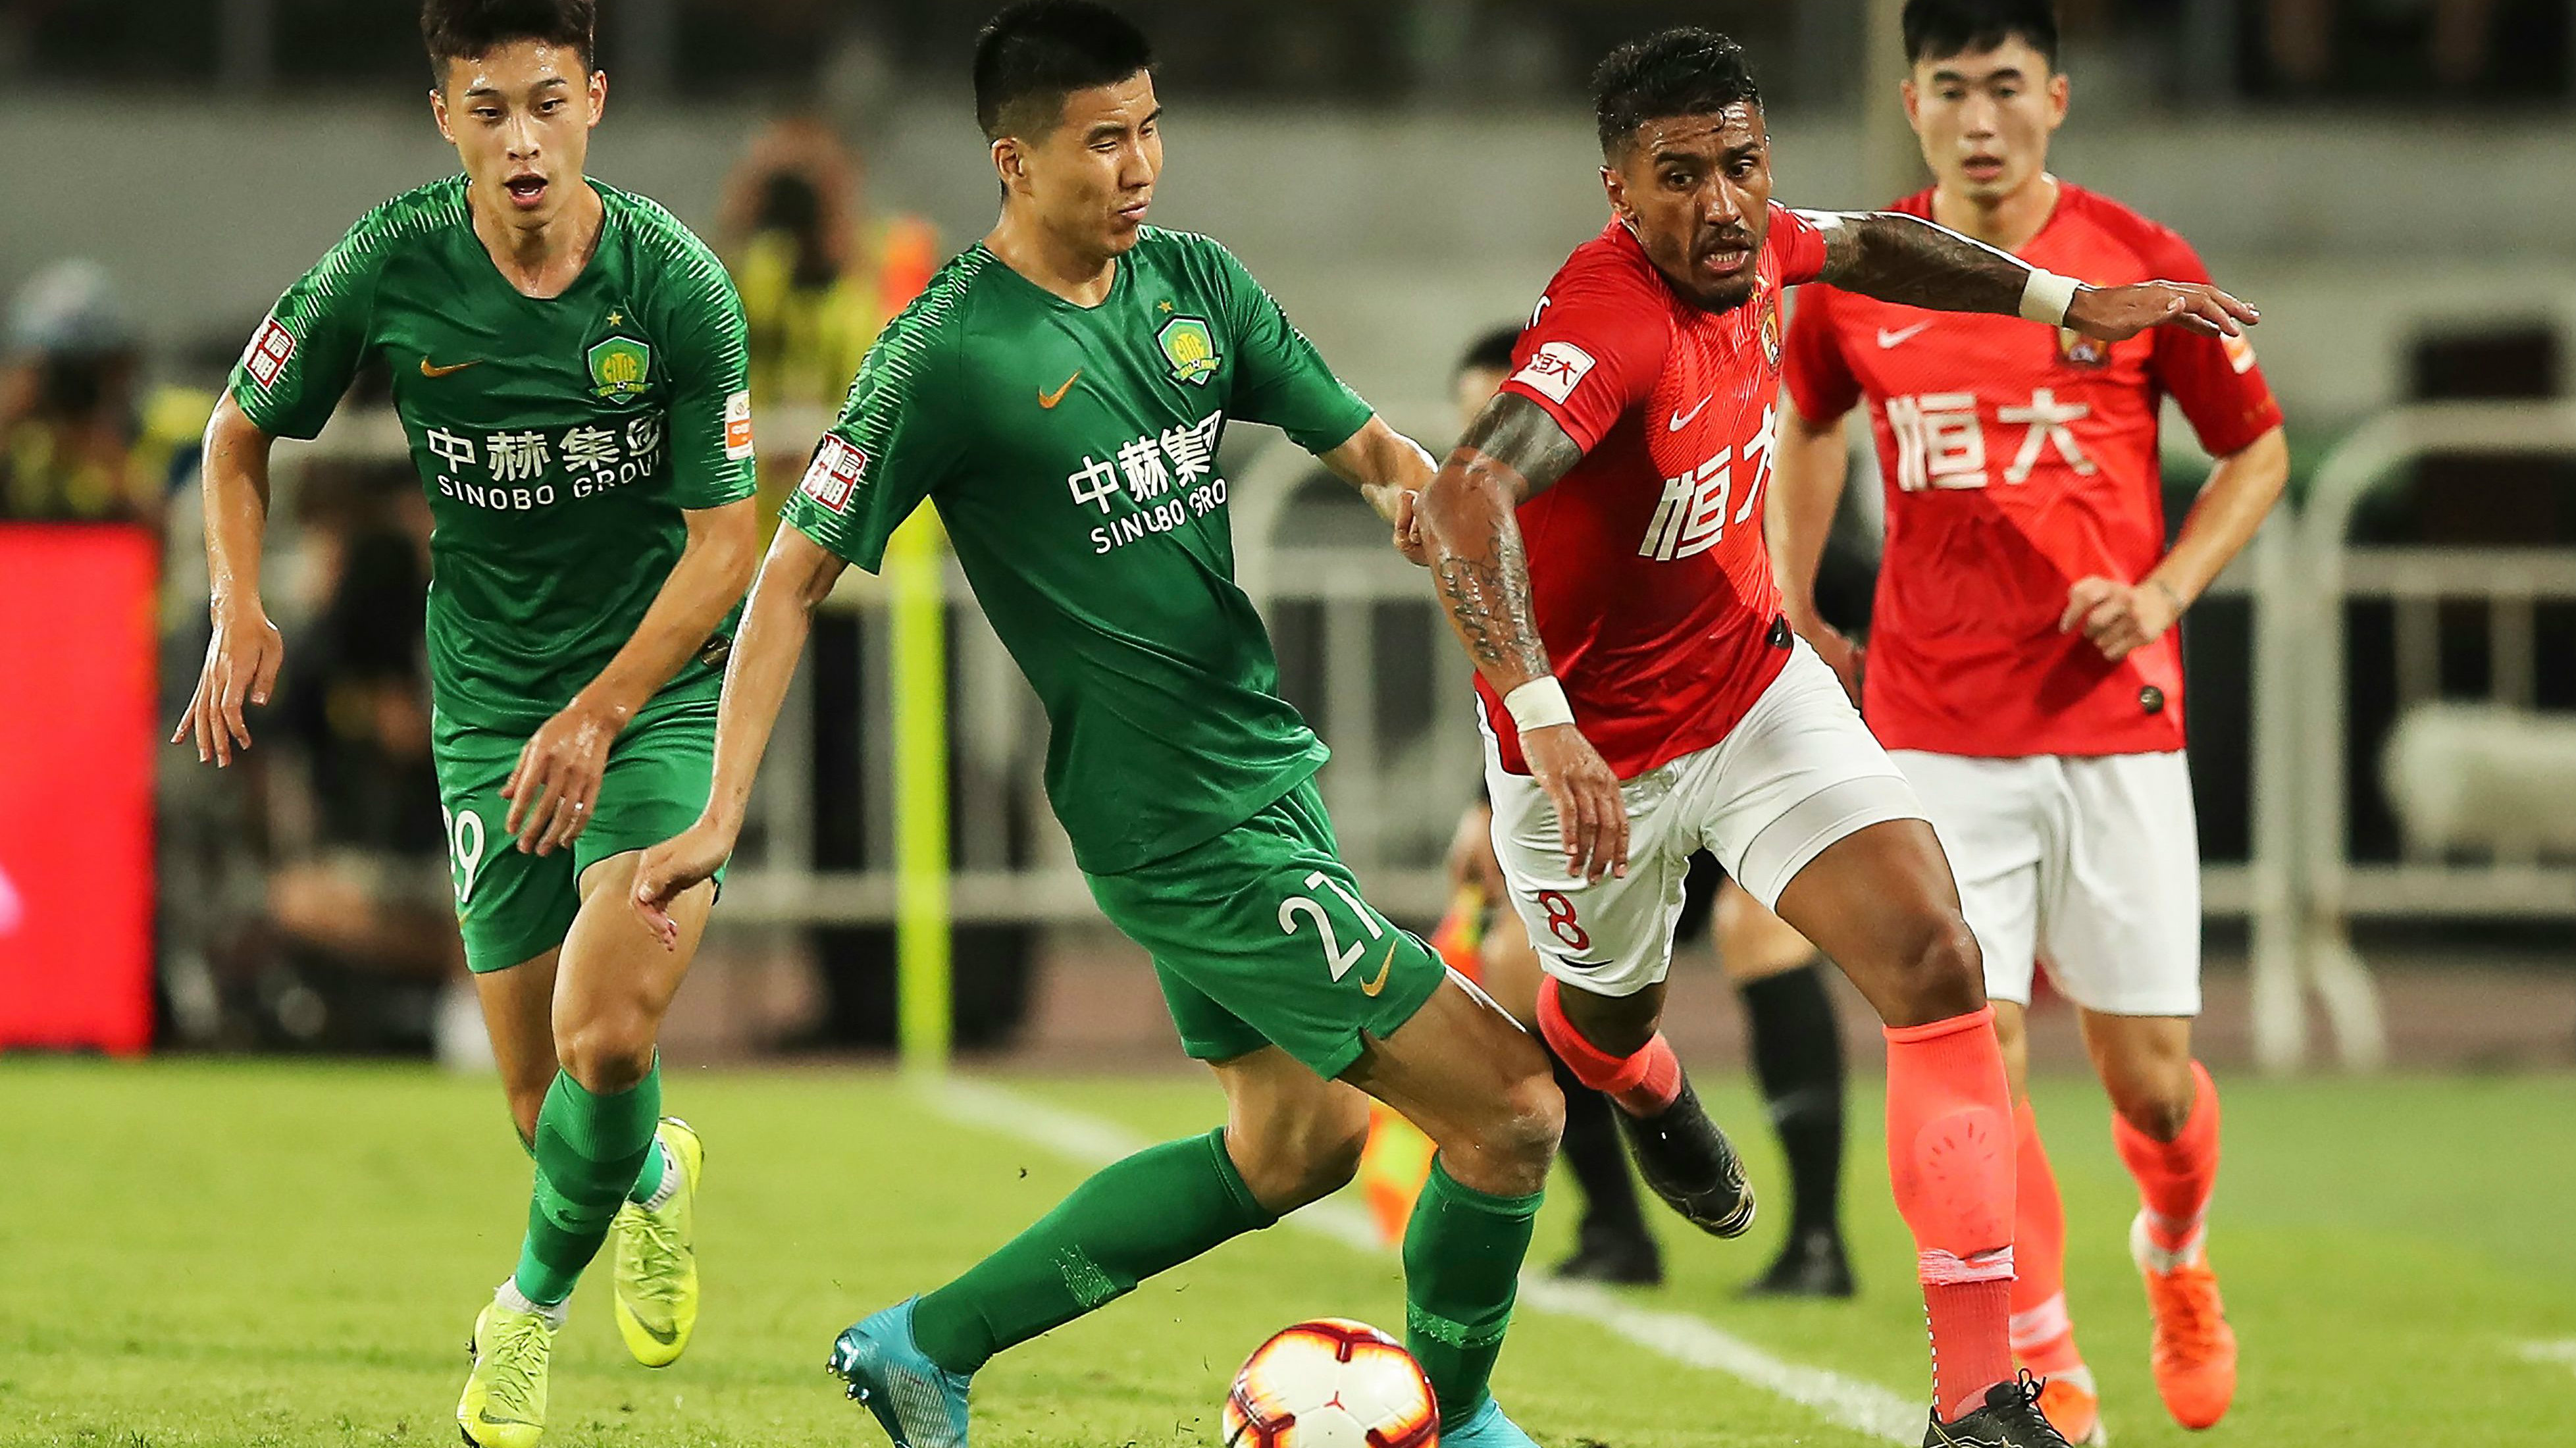 AFC orders ACL MD1-MD3 to be played away from China